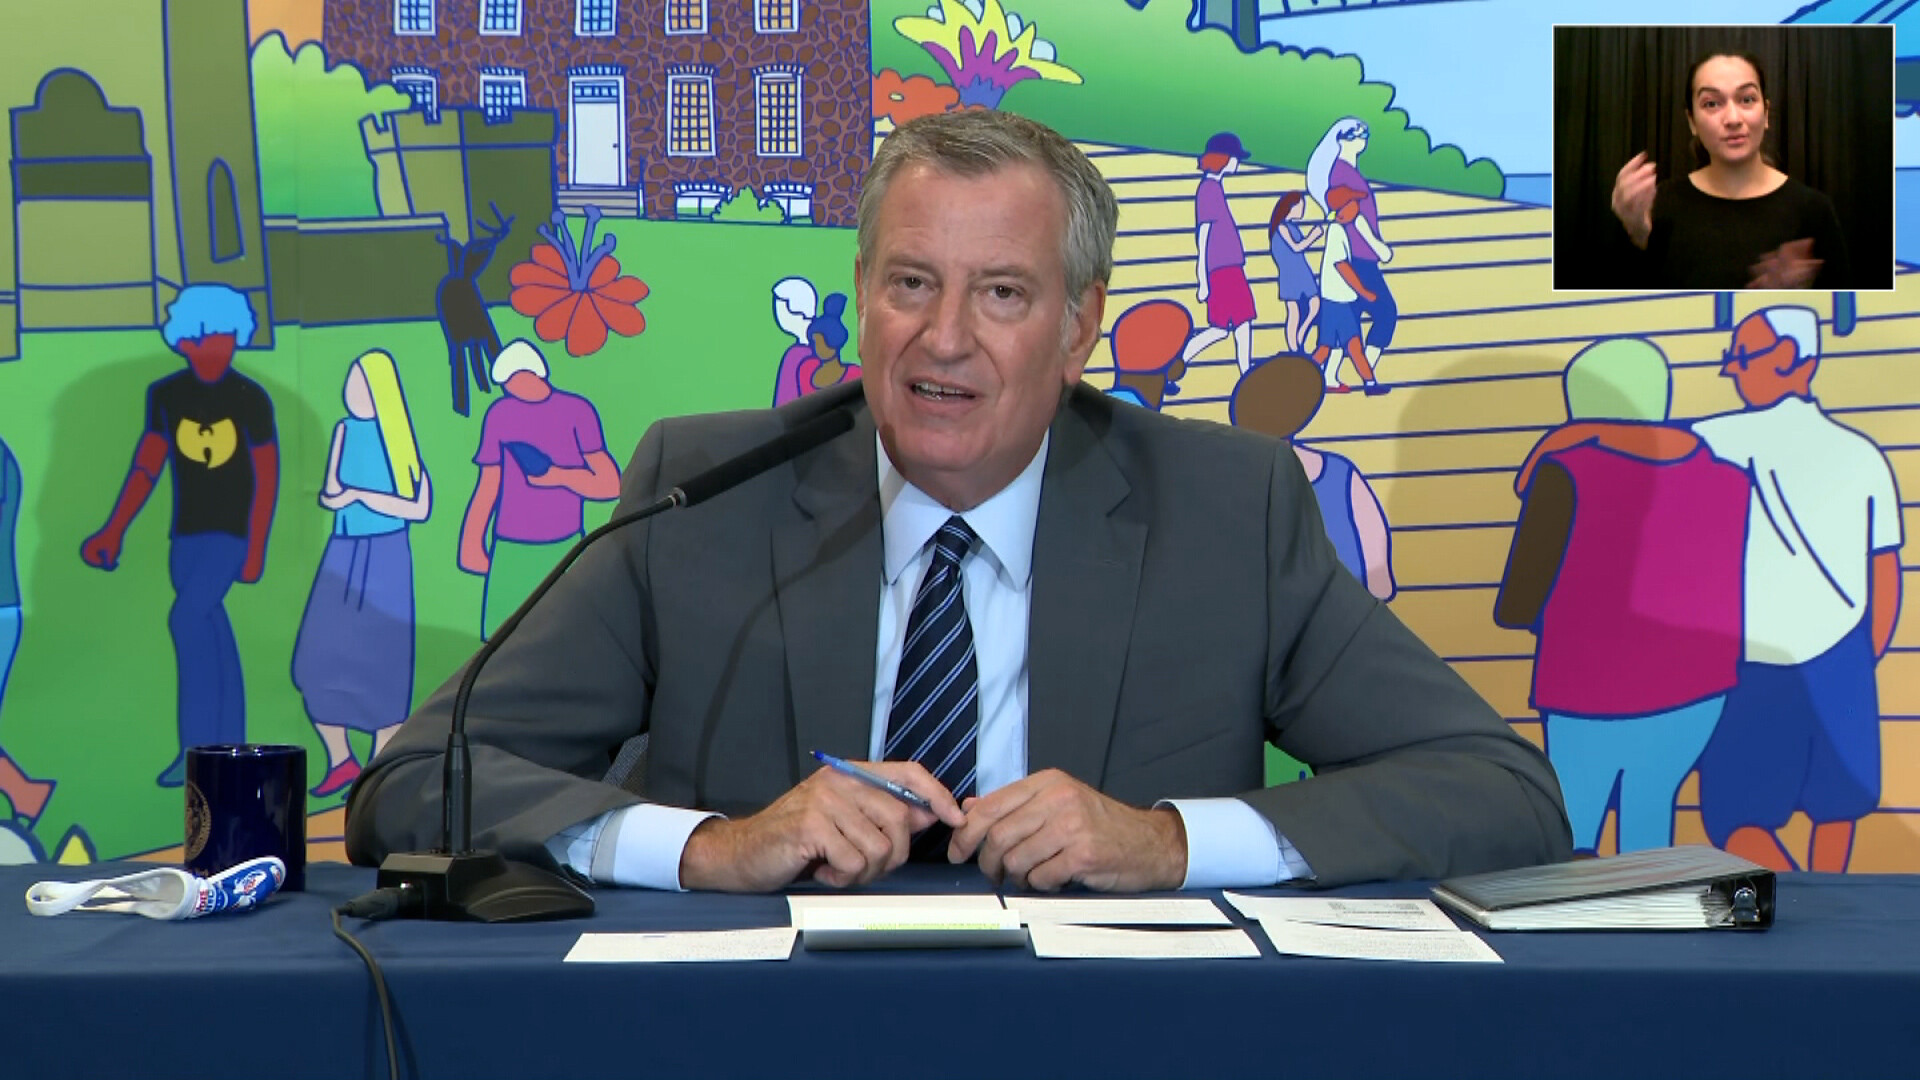 NYC vaccine mandate takes effect with 96% of teachers receiving at least one dose, mayor says